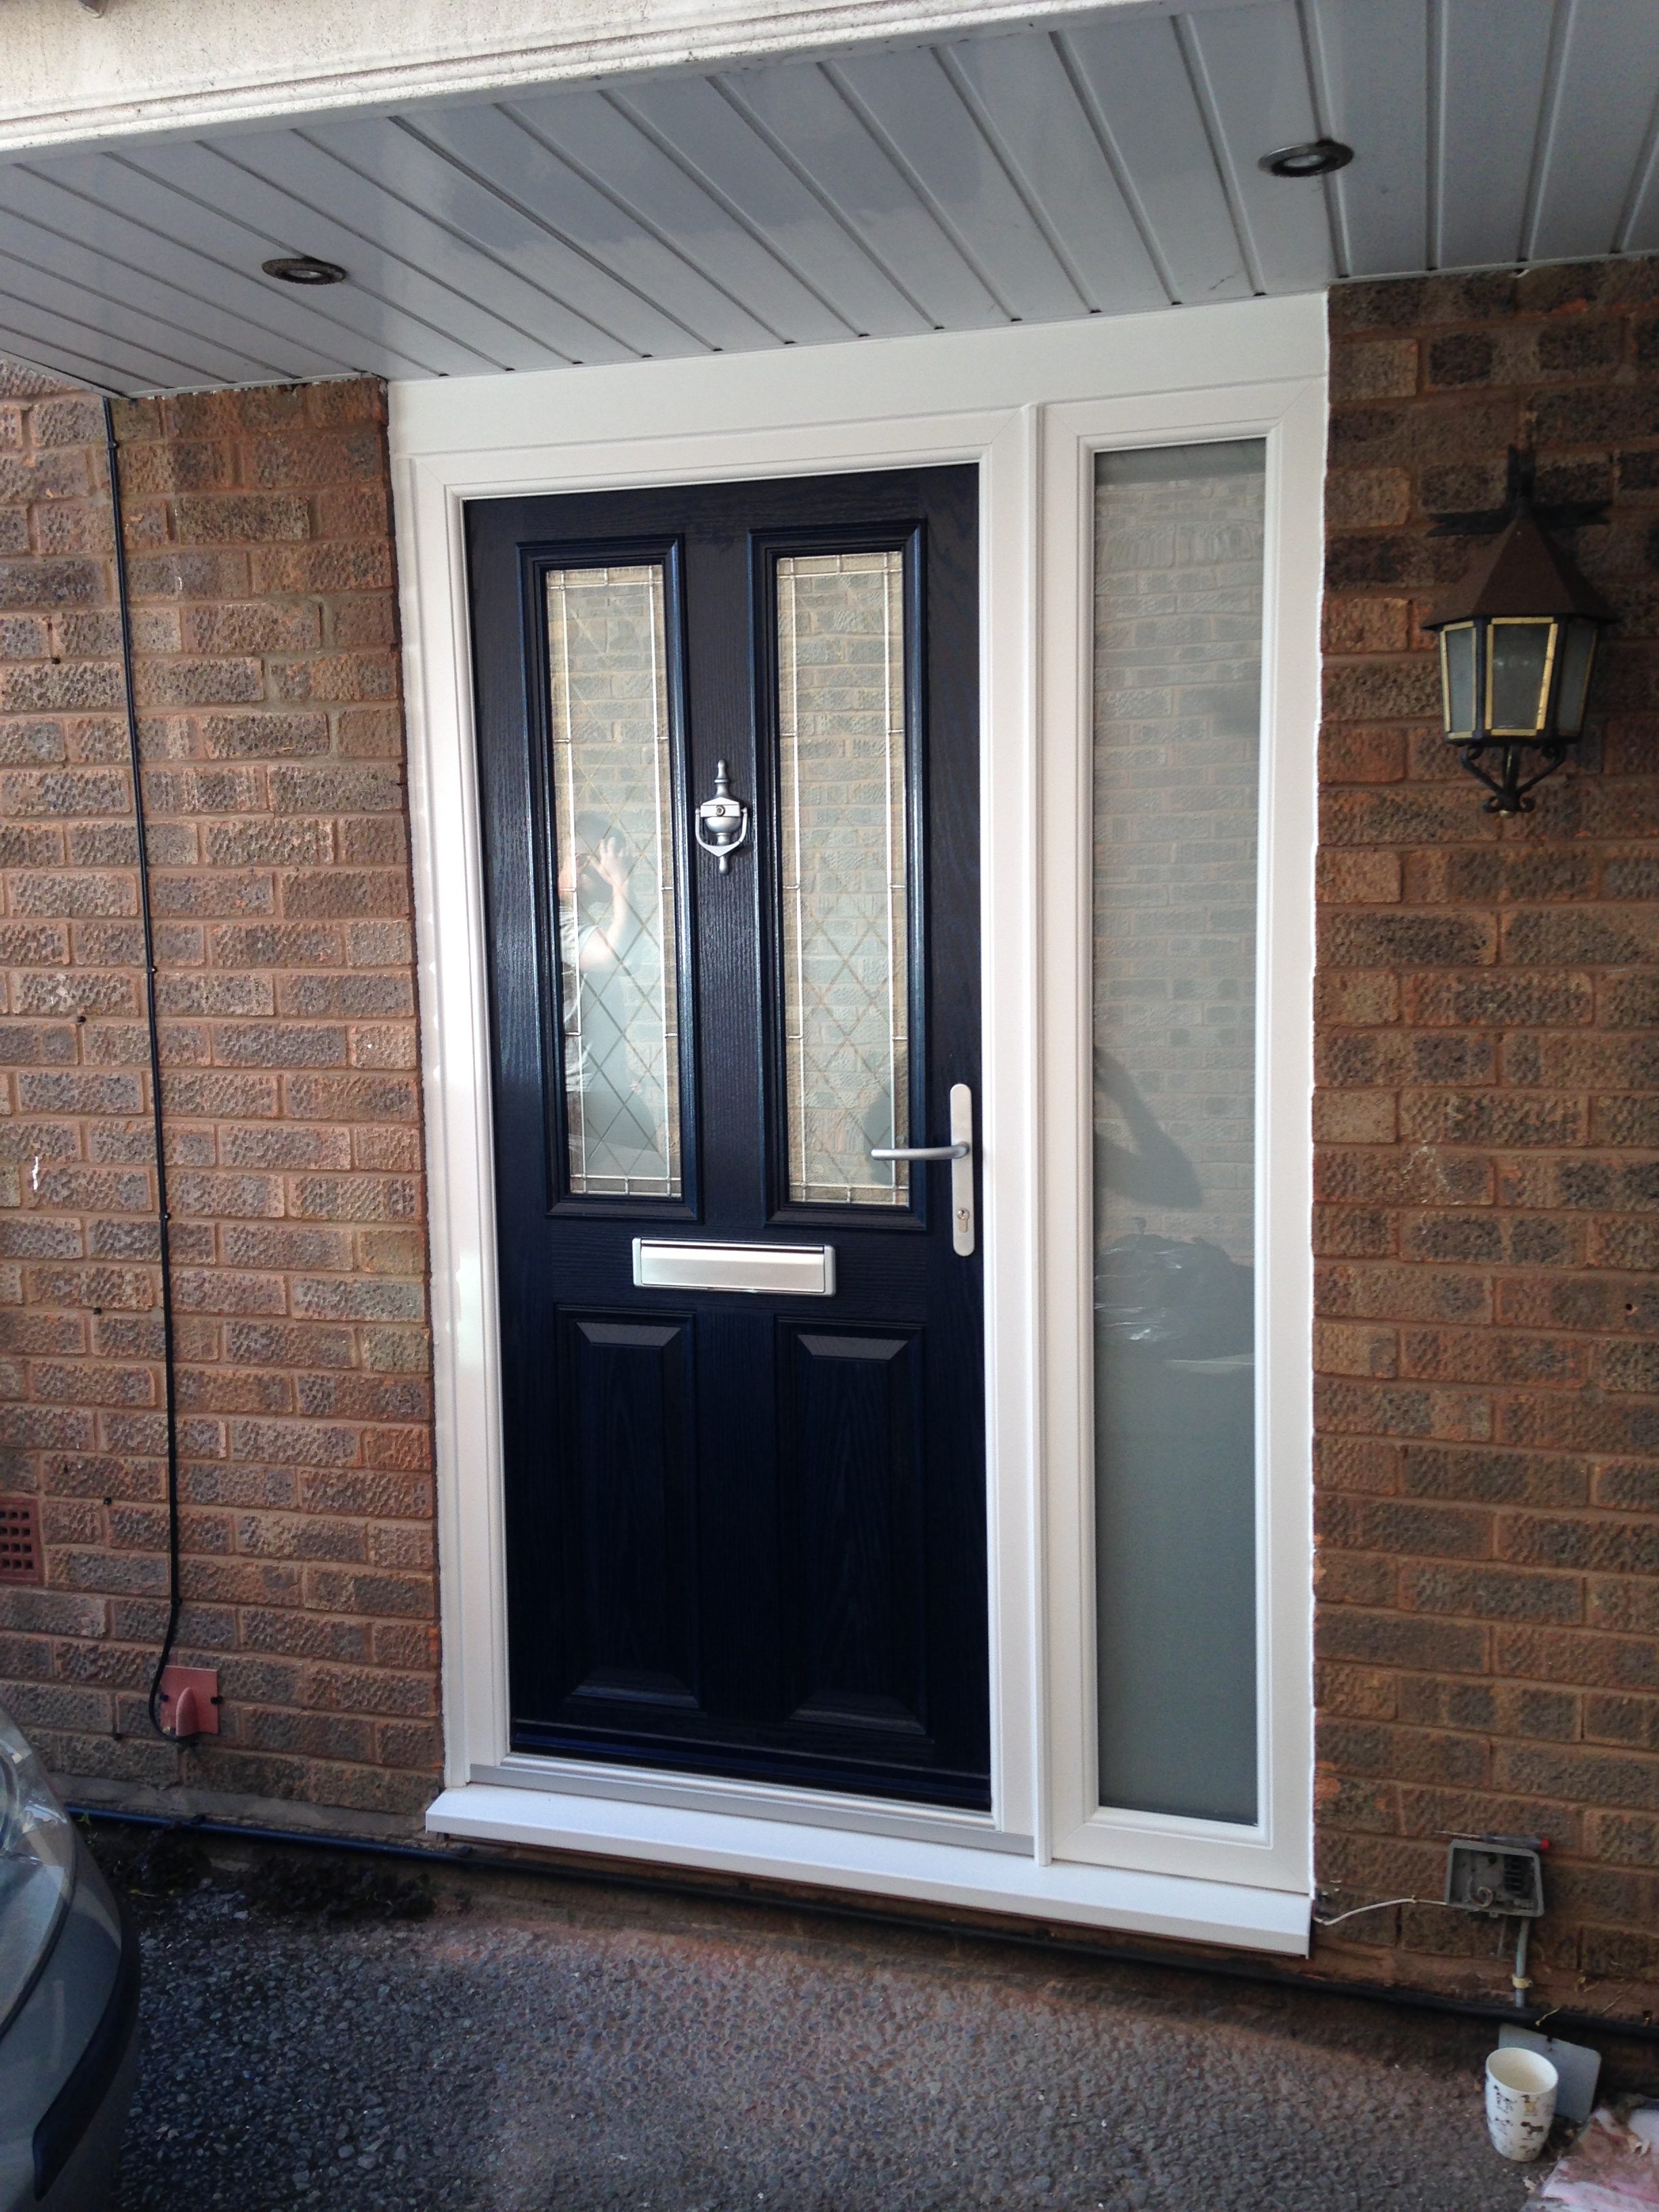 Second Composite Door